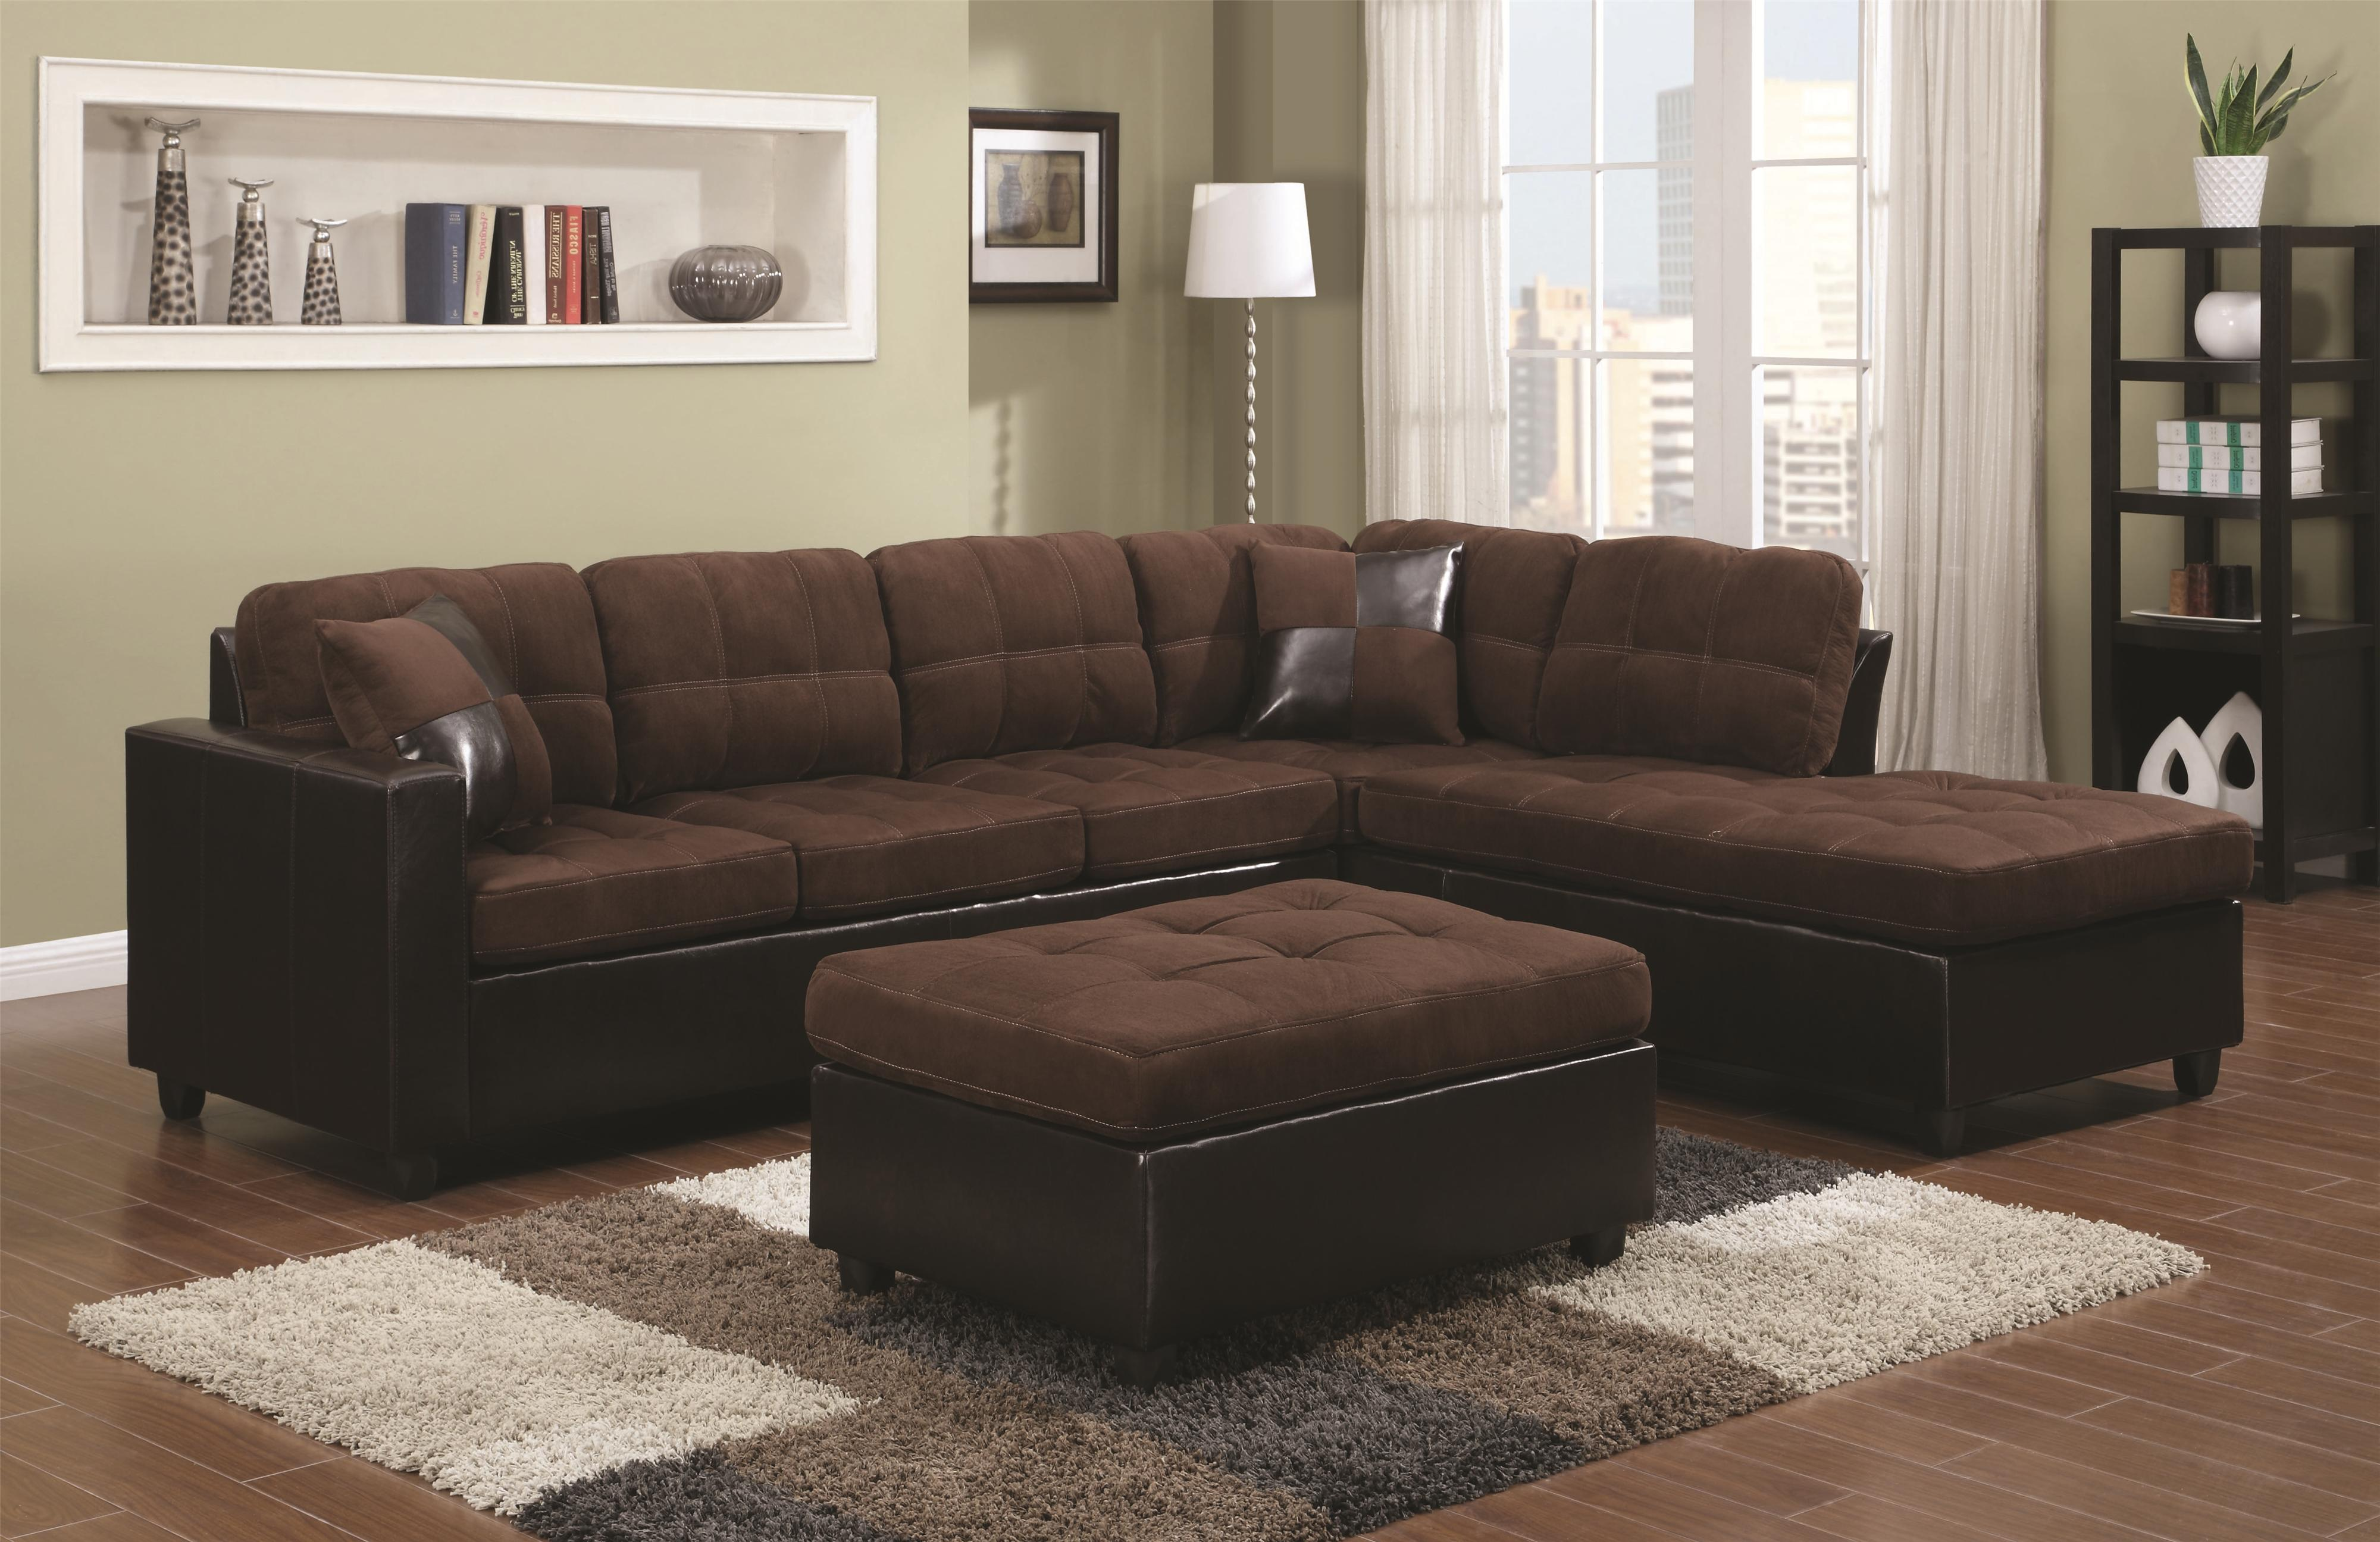 Coaster Mallory Reversible Sectional with Casual and Contemporary